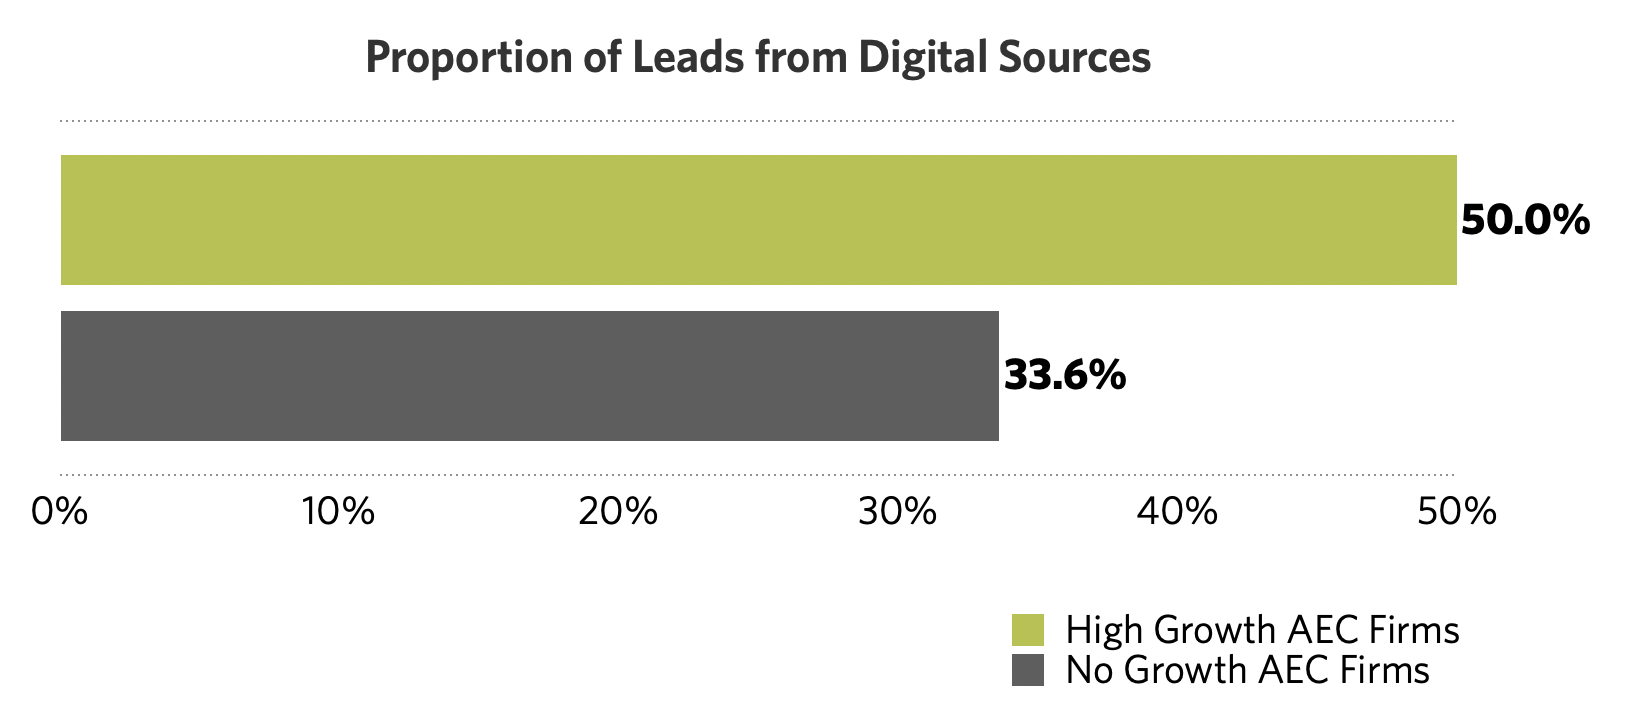 aec-high-growth-digital-leads-2021